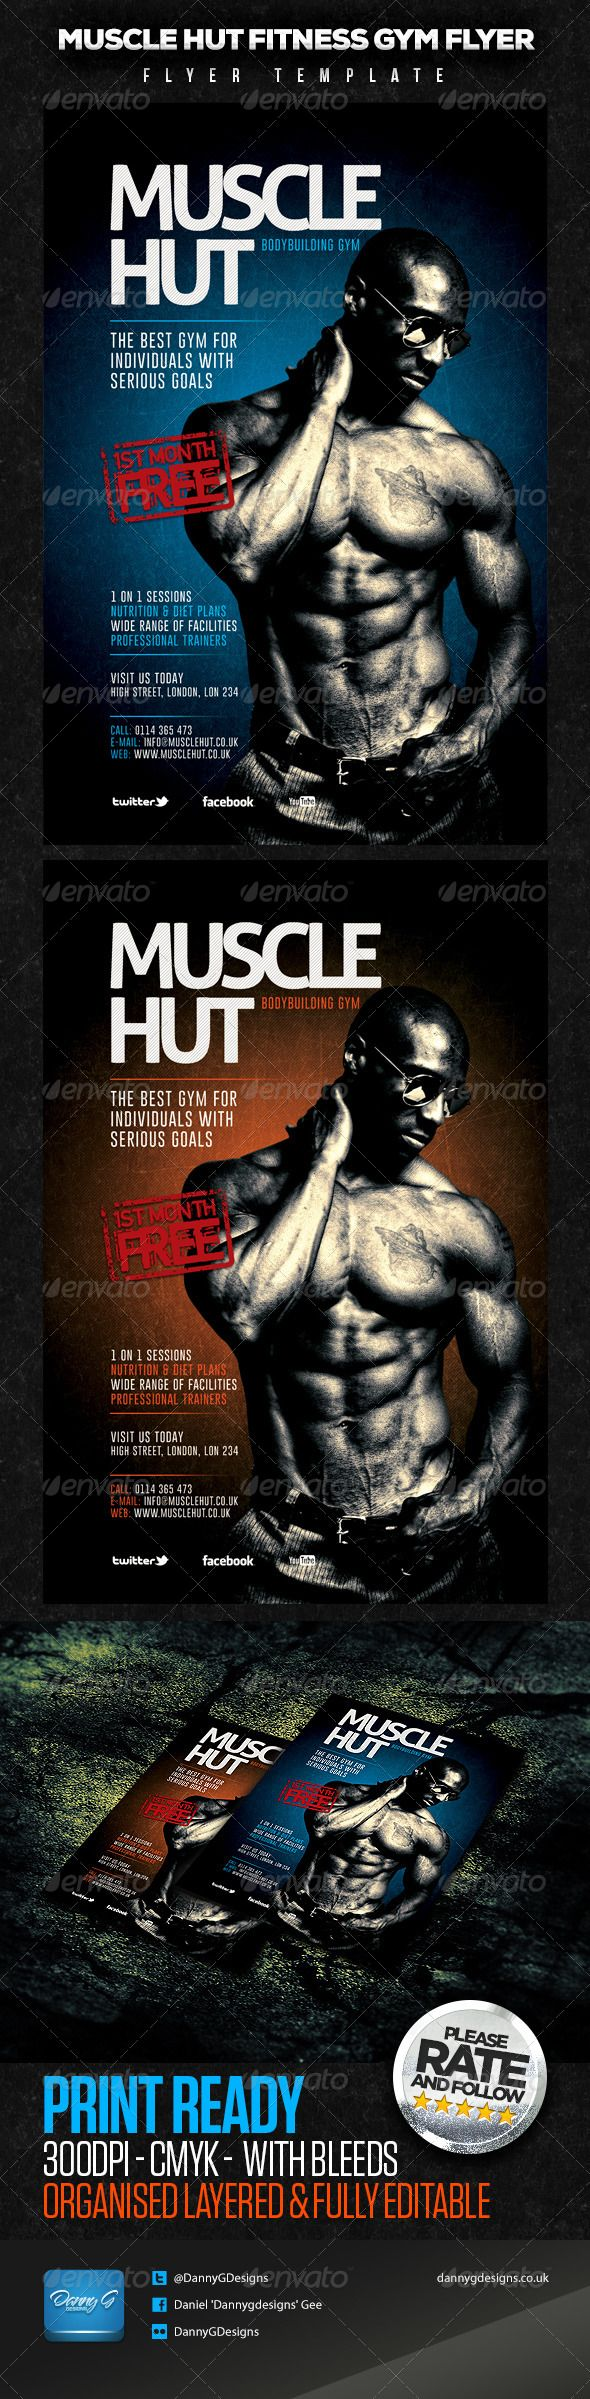 Muscle Hut BodybuildingFitness Flyer Template  Flyer Template